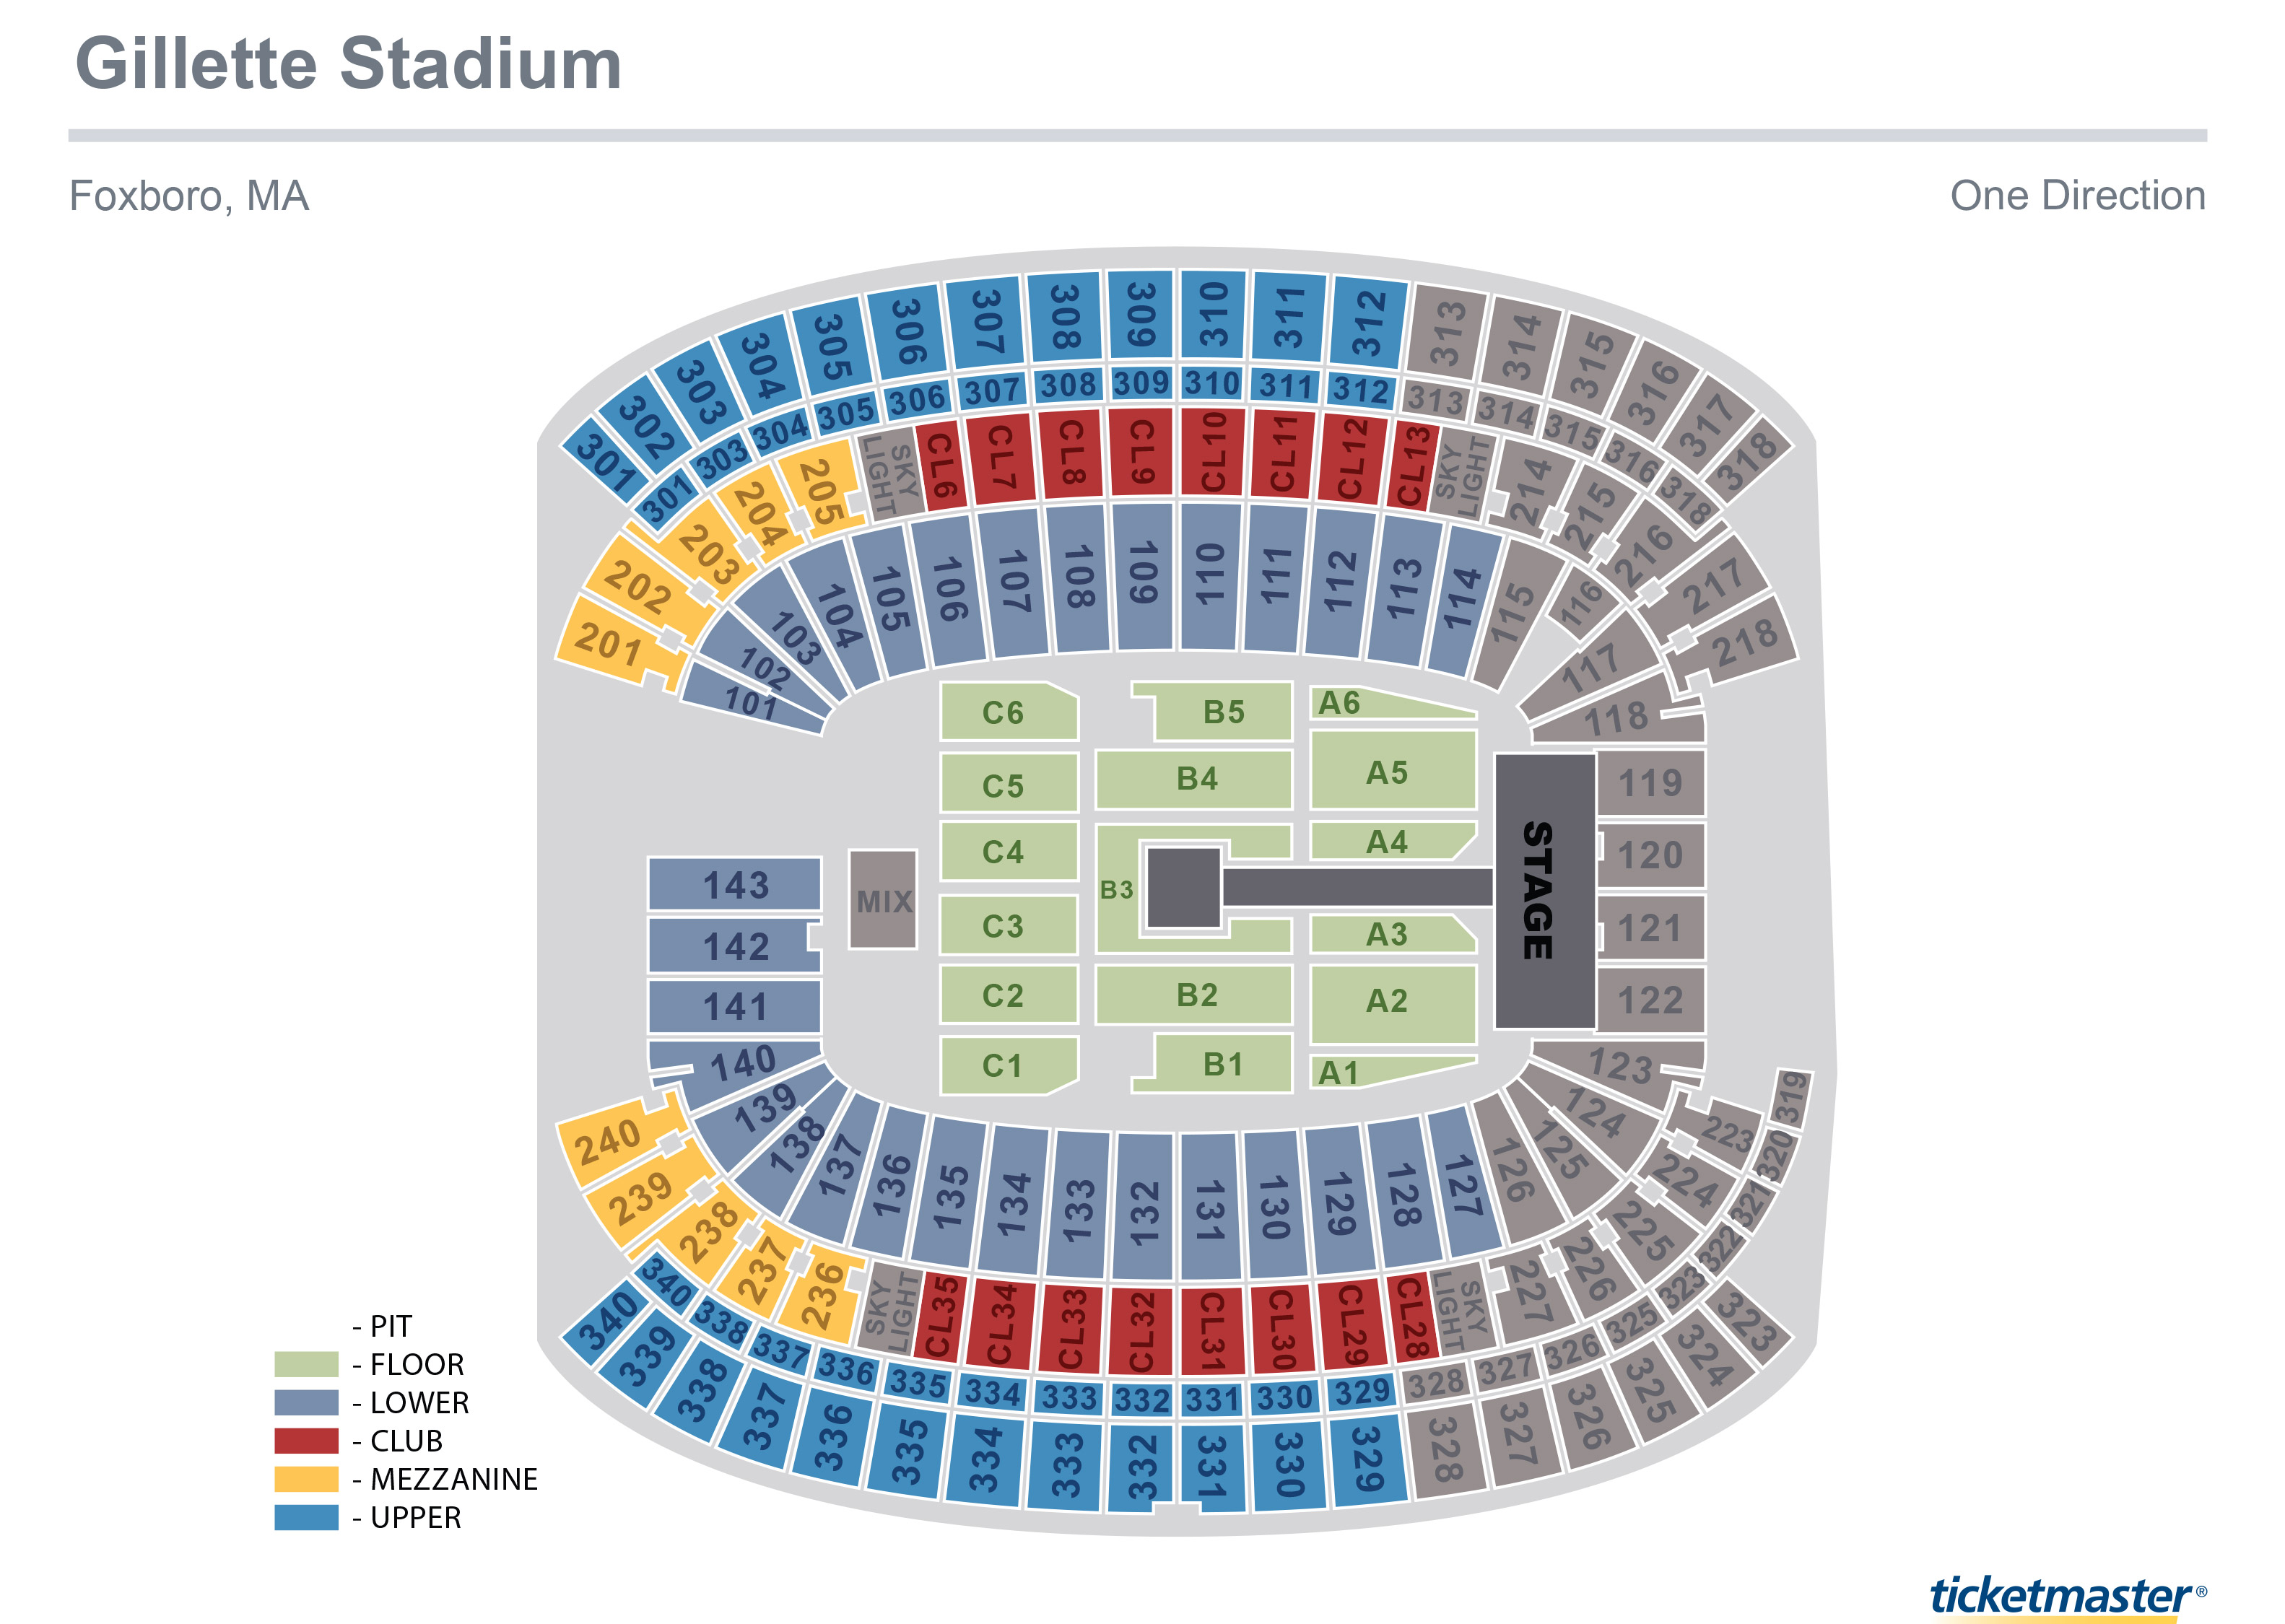 Metlife Stadium Floor Plan: Im Going To The One Direction Concert At Gillette Stadium